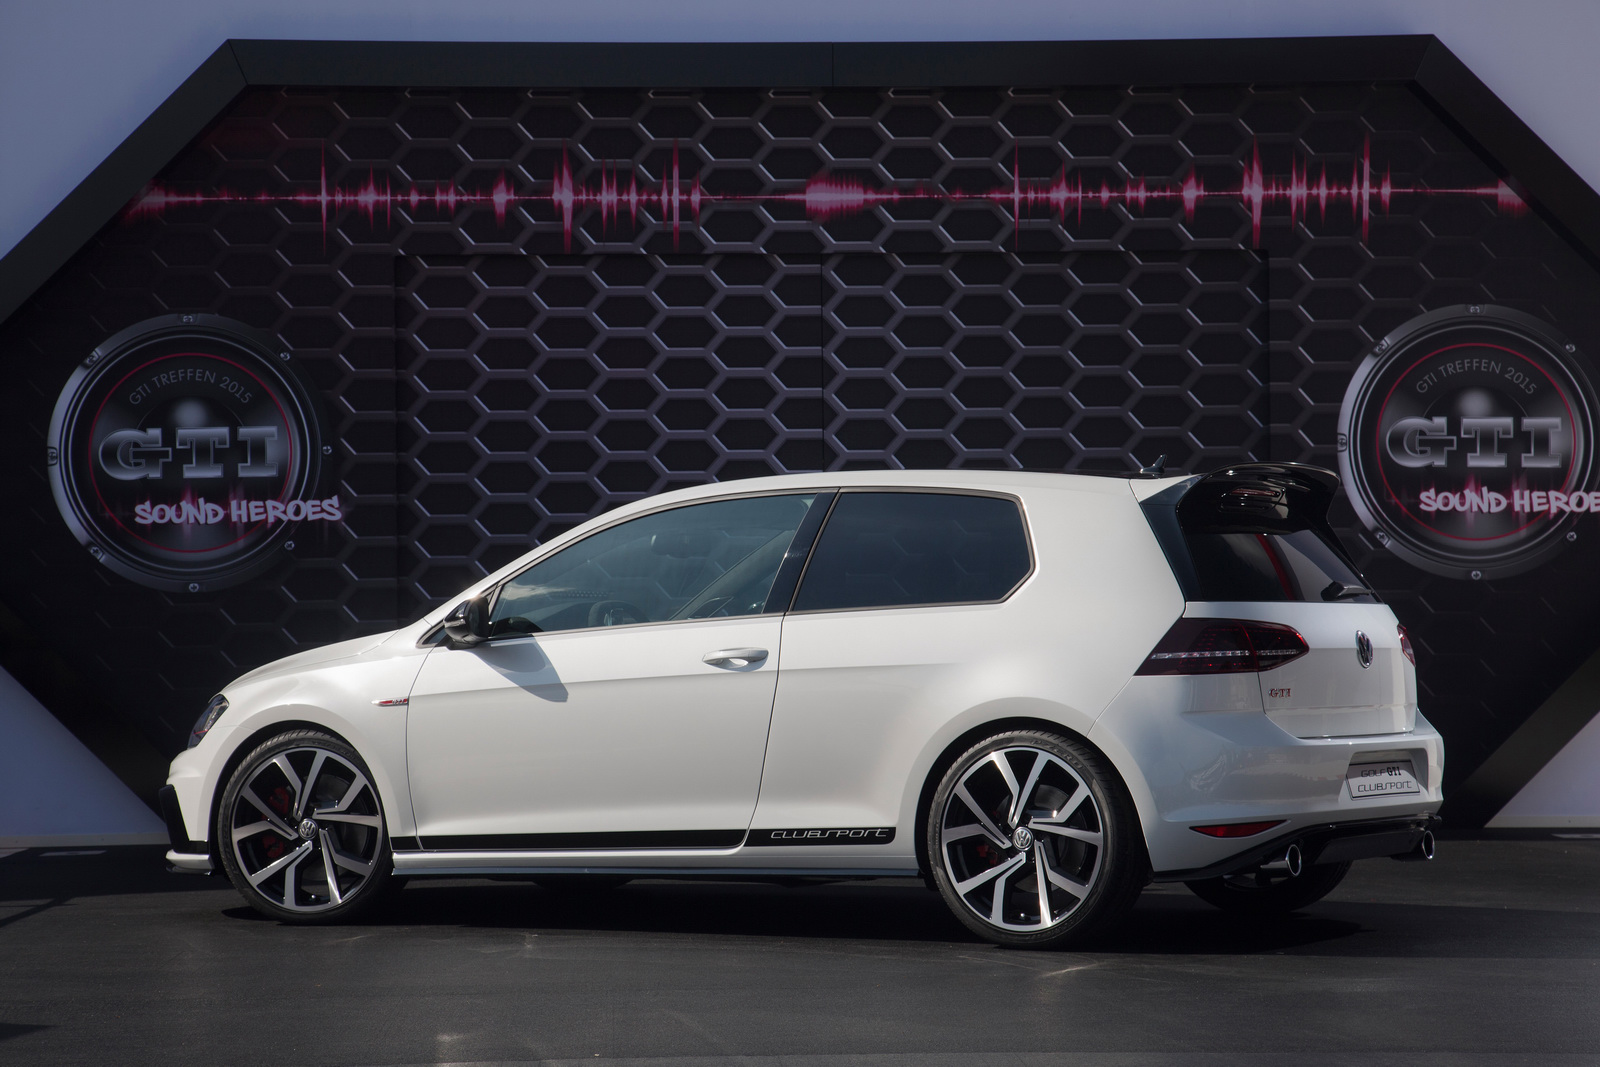 2016 Volkswagen Golf Gti Clubsport Side Exterior Preview (Photo 10 of 10)